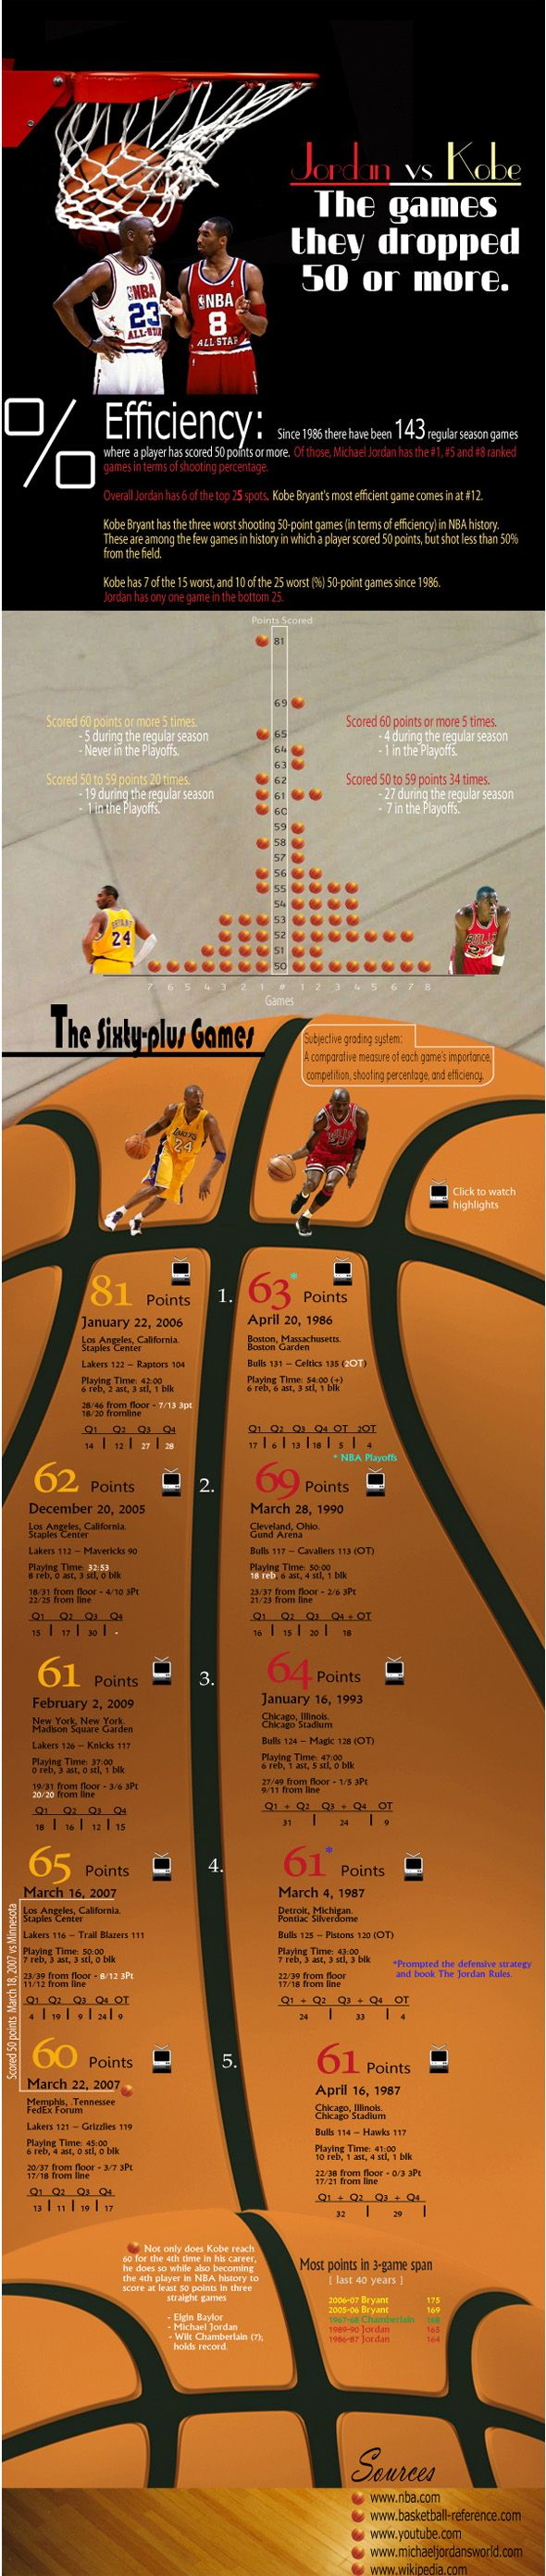 Michael Jordan vs. Kobe Bryant: The 50+ Point Games